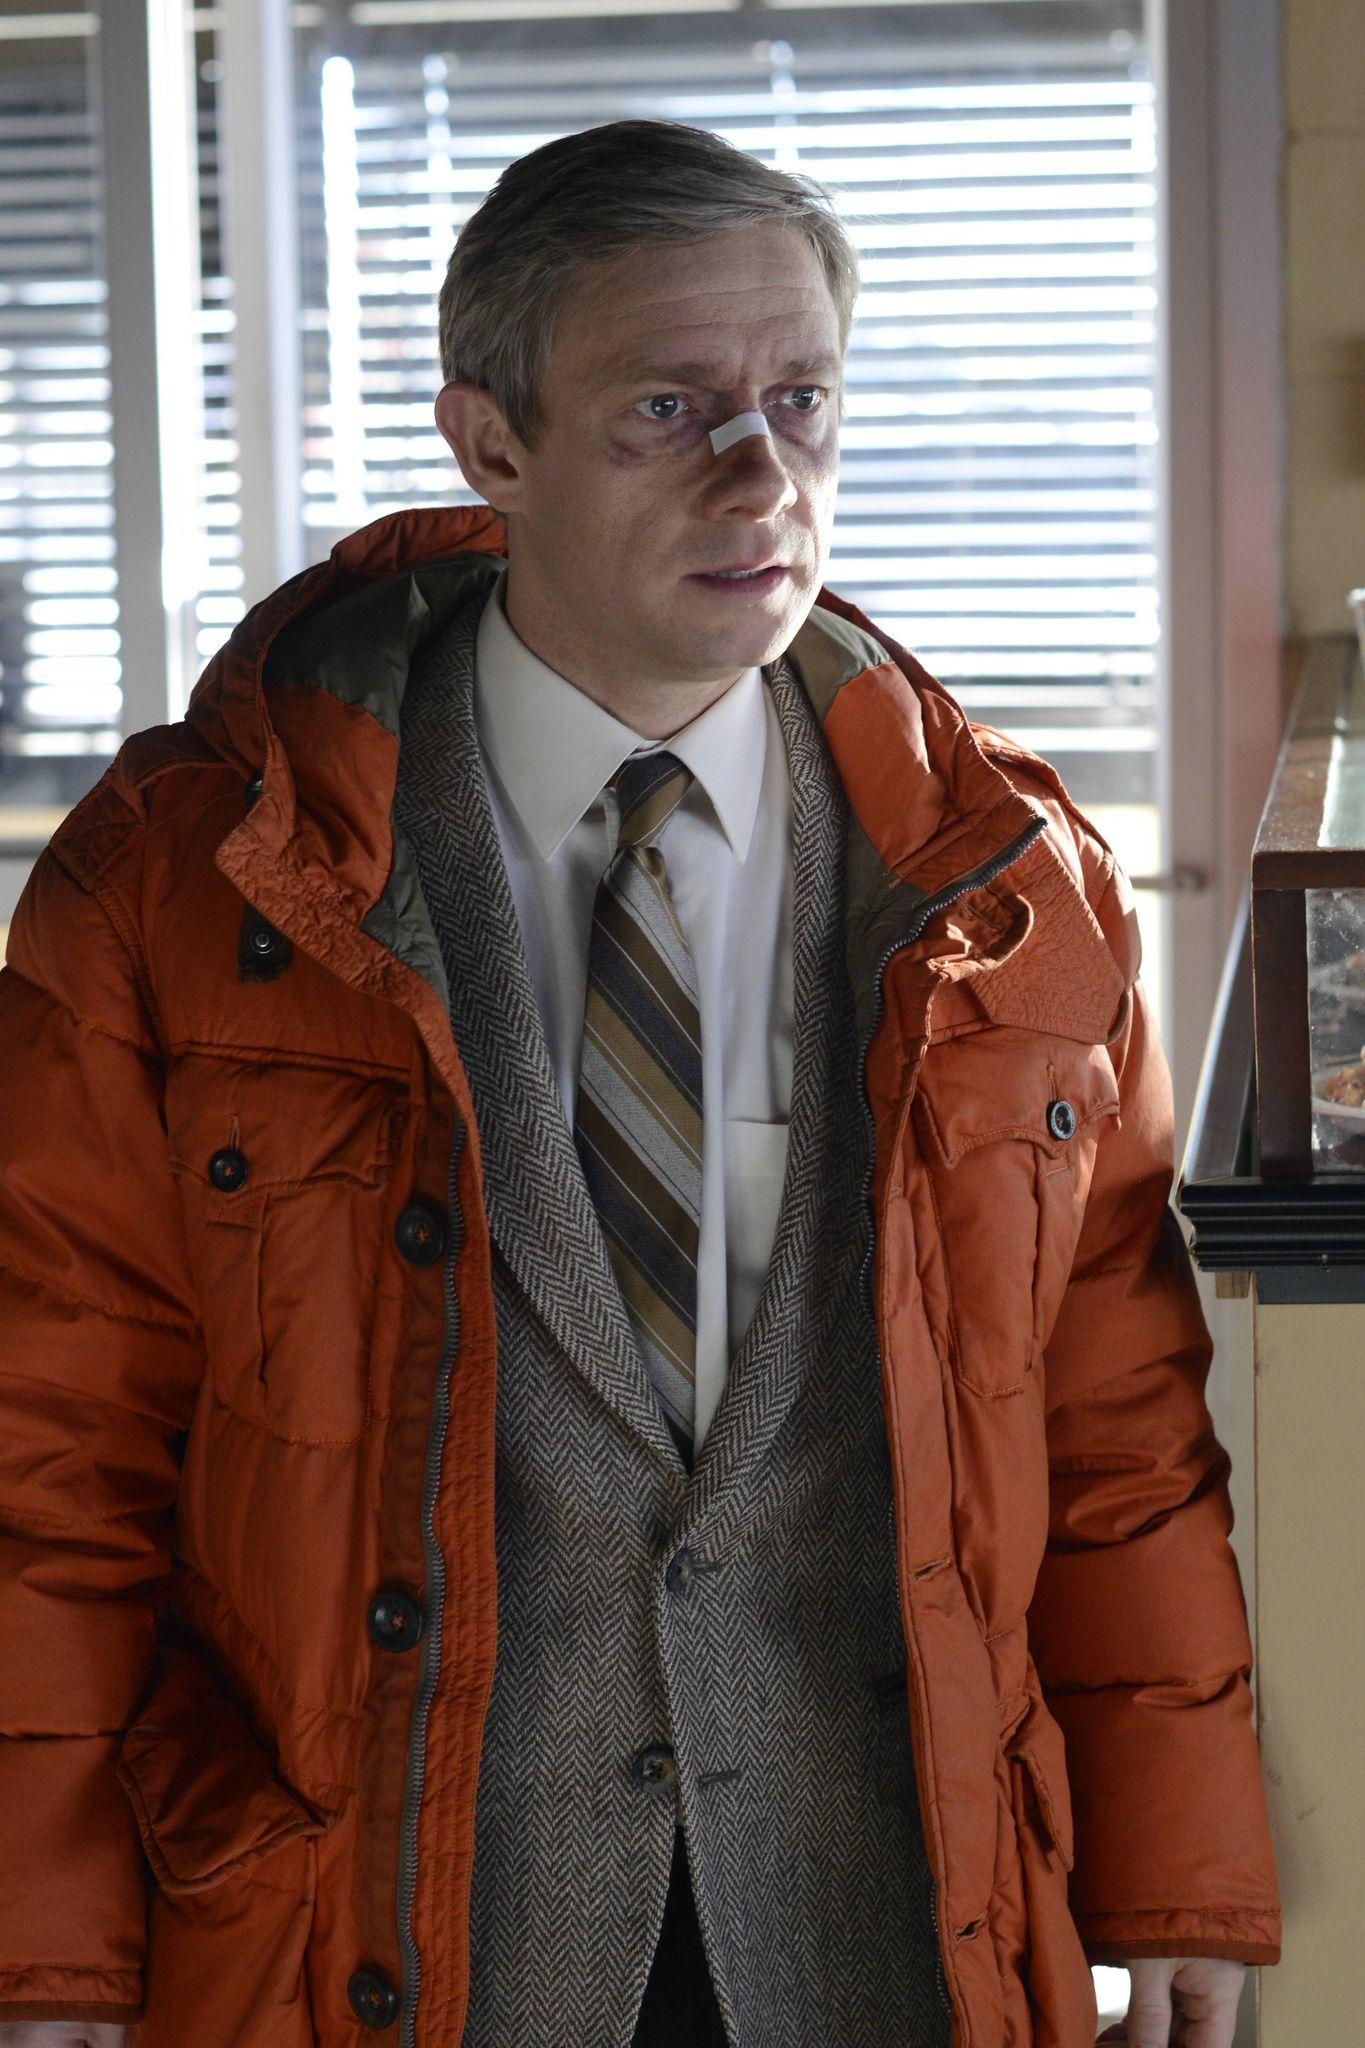 Fargo 1x01 Das Krokodil Dilemma The Crocodiles Dilemma Mit